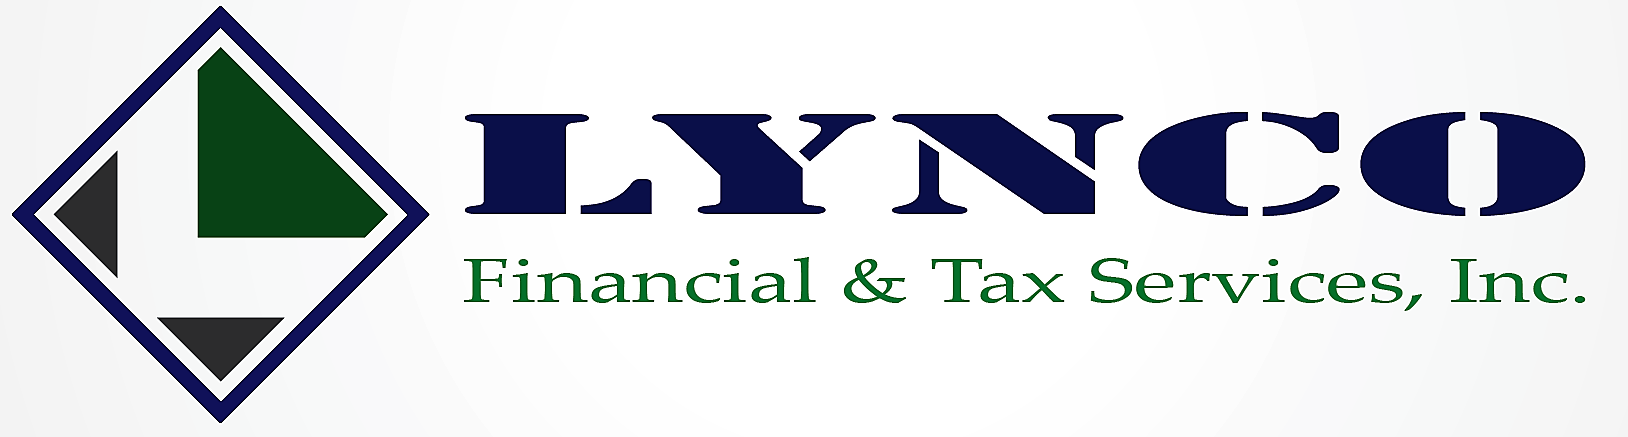 Lynco Financial & Tax Services, Inc. Logo